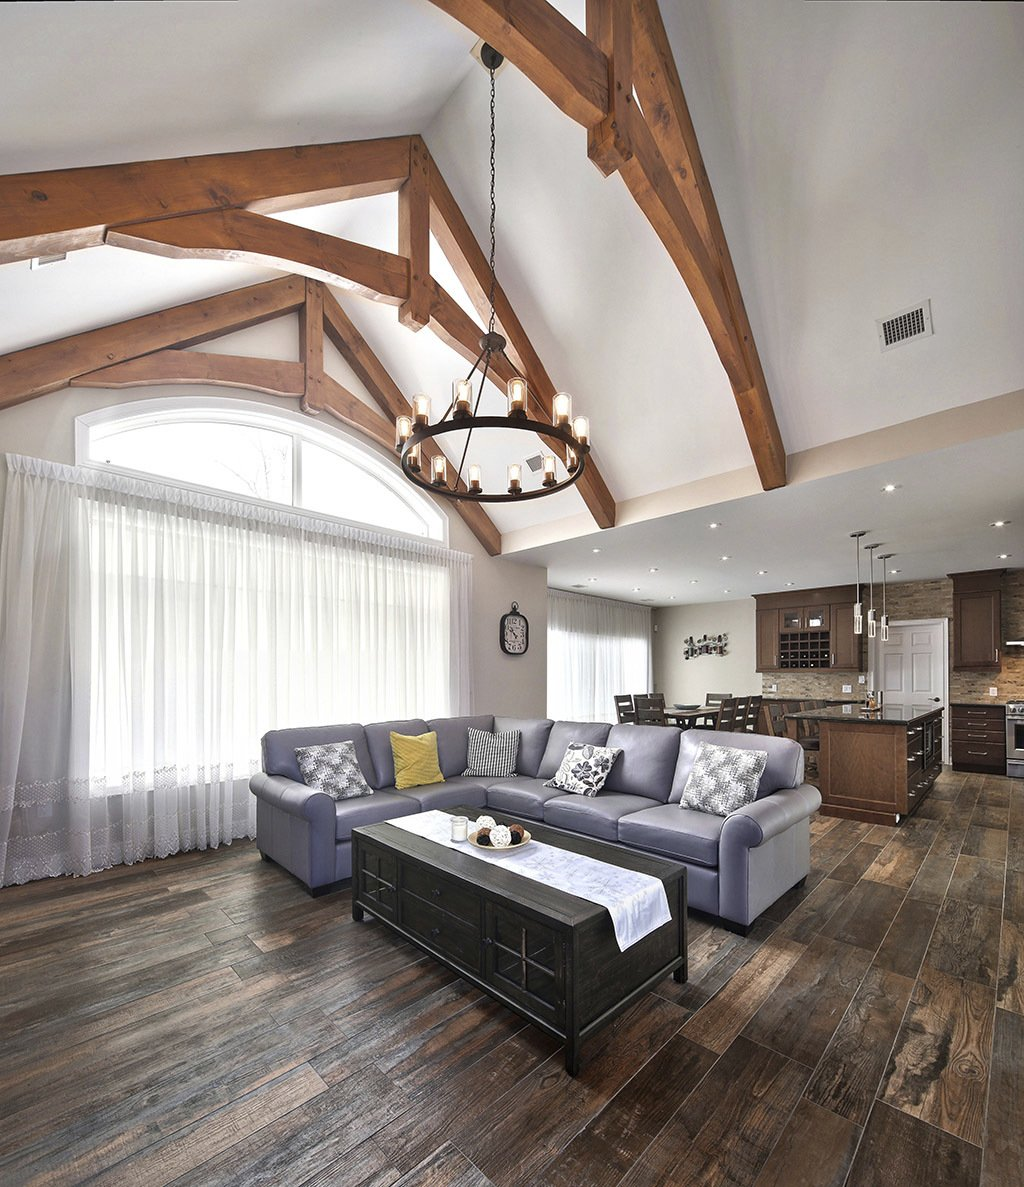 Custom Collingwood living space with high ceiling and large lighting fixture over grey sofa